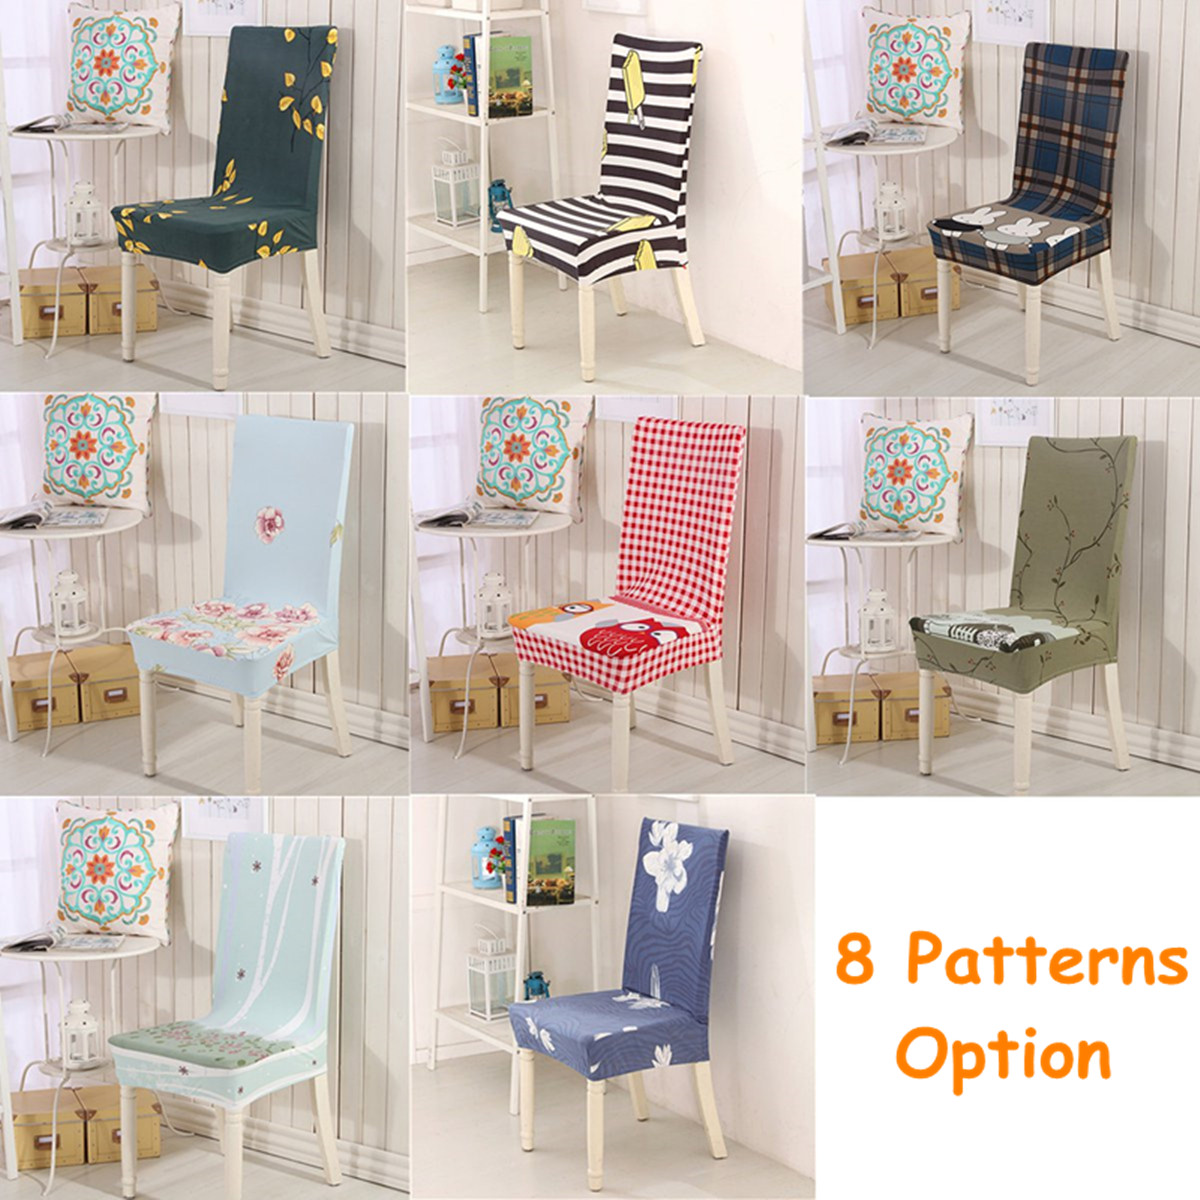 Chair Cover Patterns Household Chair Covers Elastic Anti Fouling Seat Sub Set 3 Colors Chioce Chairs Cover